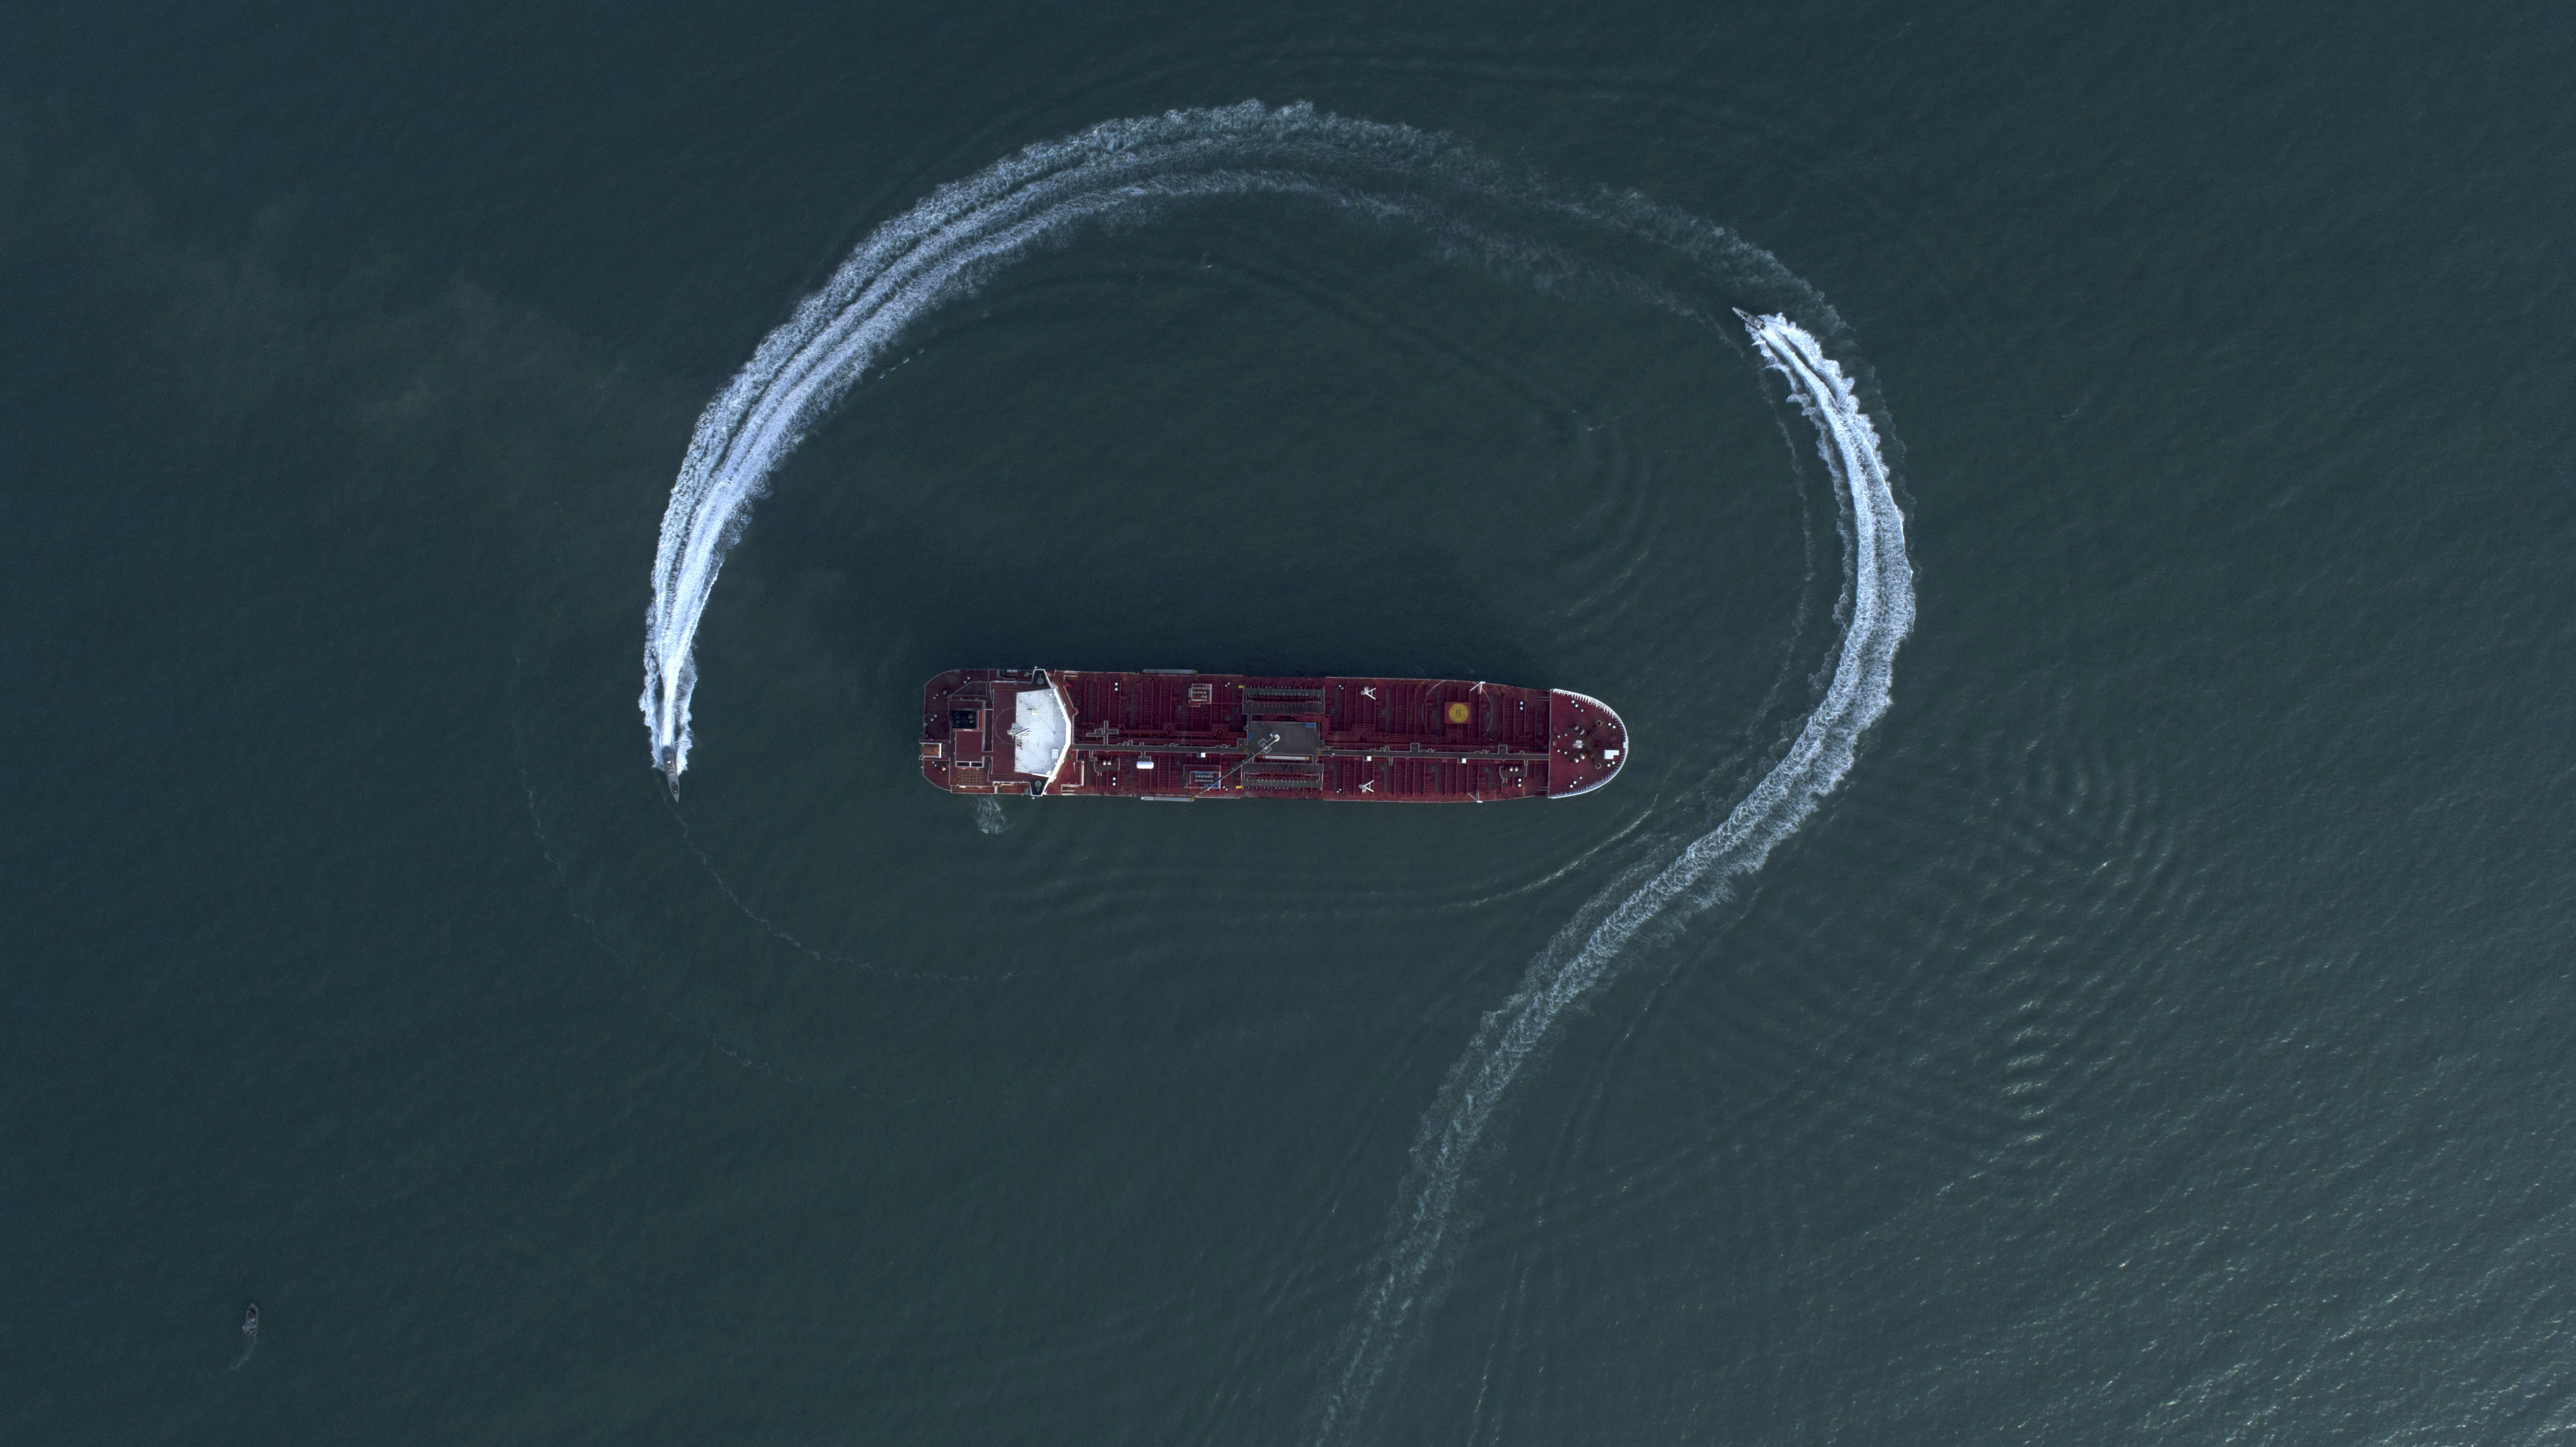 FILE - In this July 21, 2019 file photo, an aerial view shows a speedboat of Iran's Revolutionary Guard moving around the British-flagged oil tanker Stena Impero, which was seized in the Strait of Hormuz by the Guard, in the Iranian port of Bandar Abbas. The U.S. Navy is trying to put together a new coalition of nations to counter what it sees as a renewed maritime threat from Iran. Meanwhile, Iran finds itself backed into a corner and ready for a possible conflict. It stands poised on Friday, Sept. 6, 2019, to further break the terms of its 2015 nuclear deal with world powers. (Morteza Akhoondi/Tasnim News Agency via AP, File)